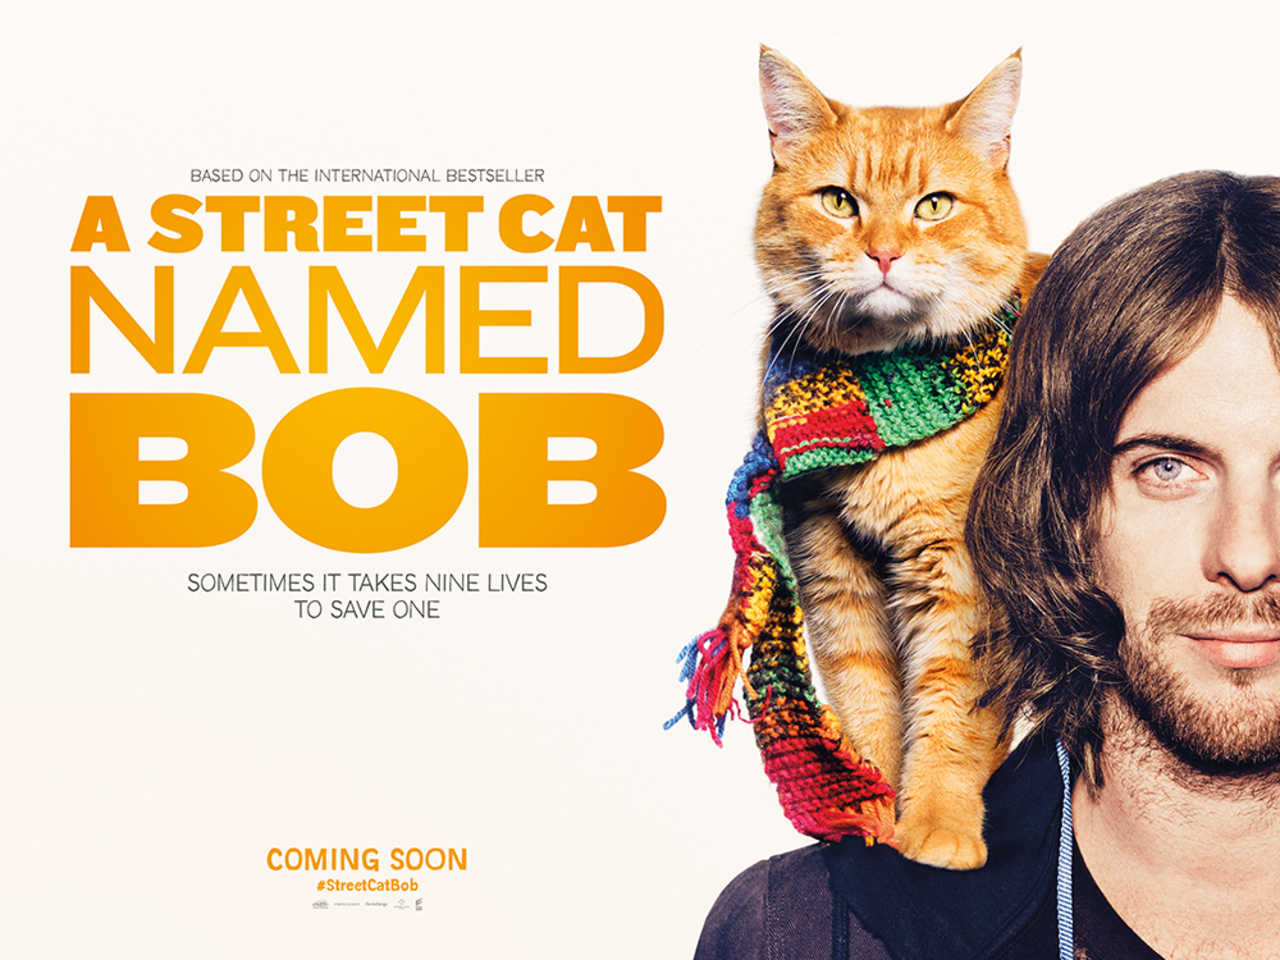 A Street Cat Named Bob 2016 Bluray